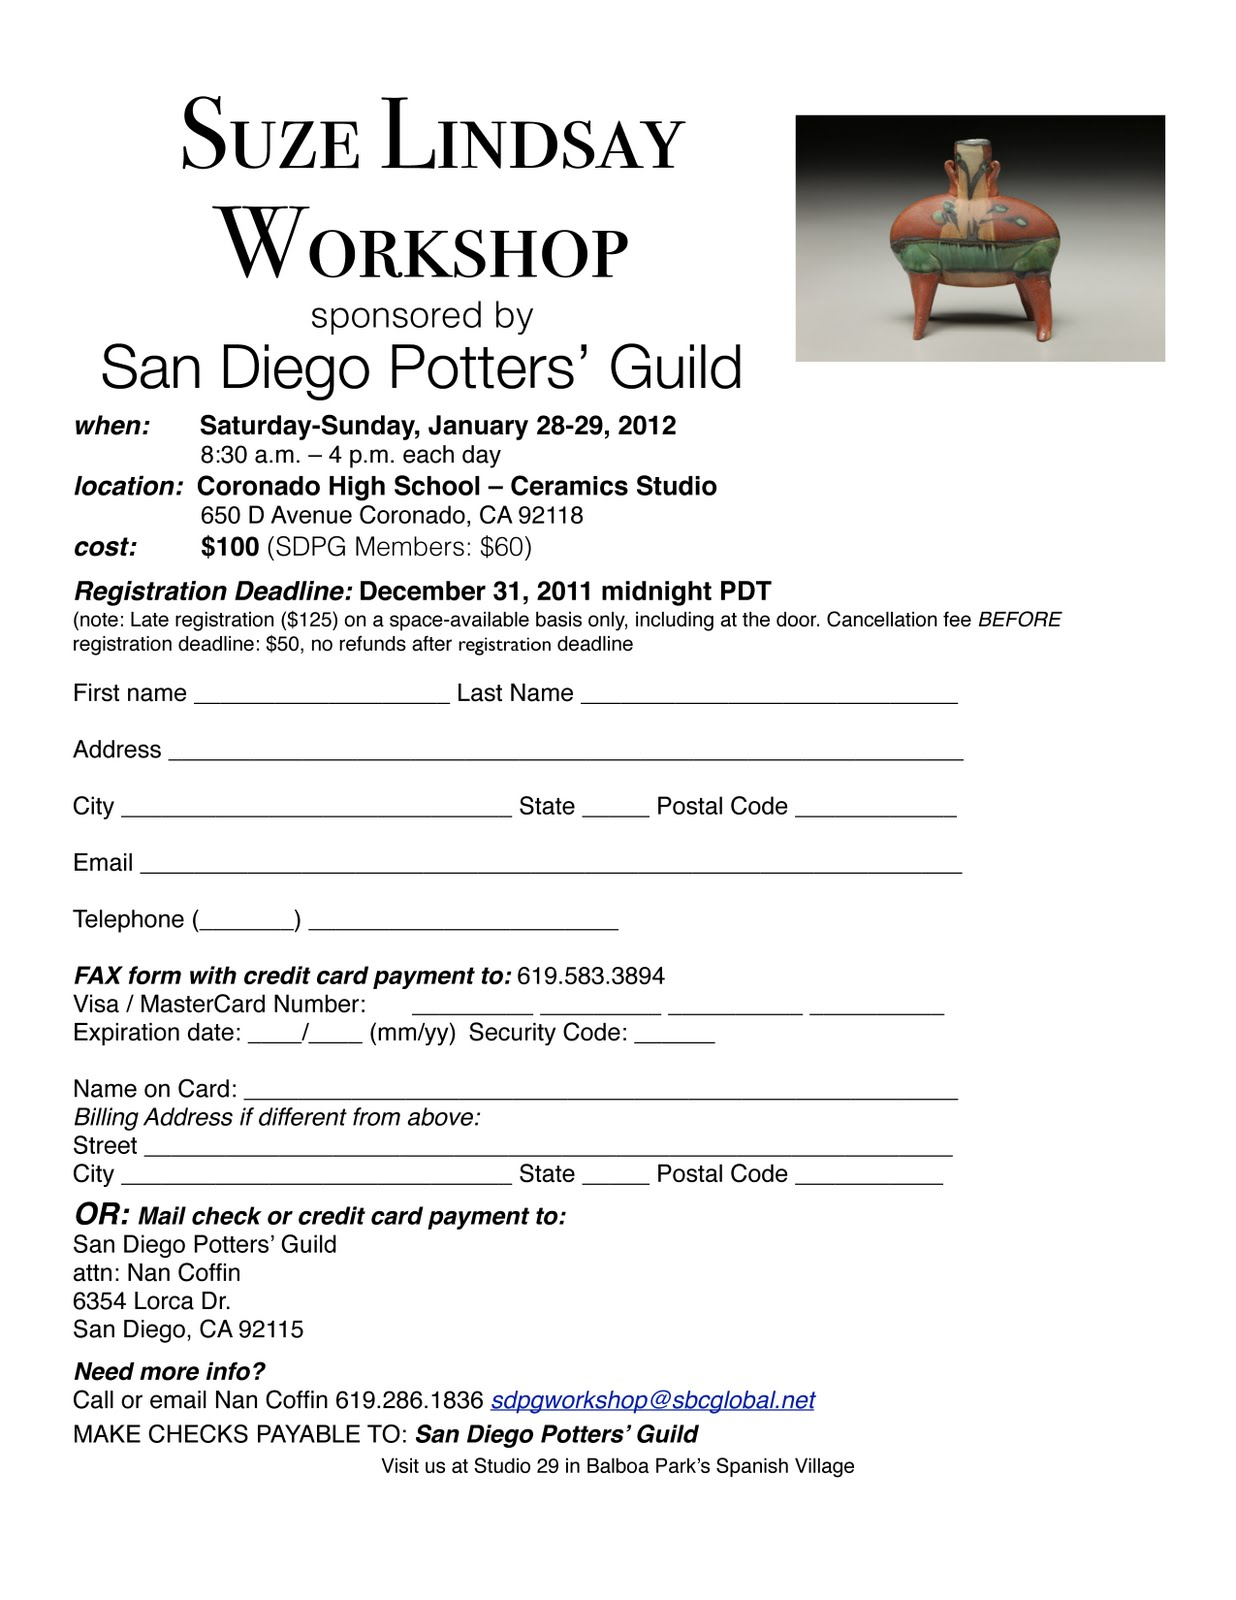 workshop registration form template | trattorialeondoro